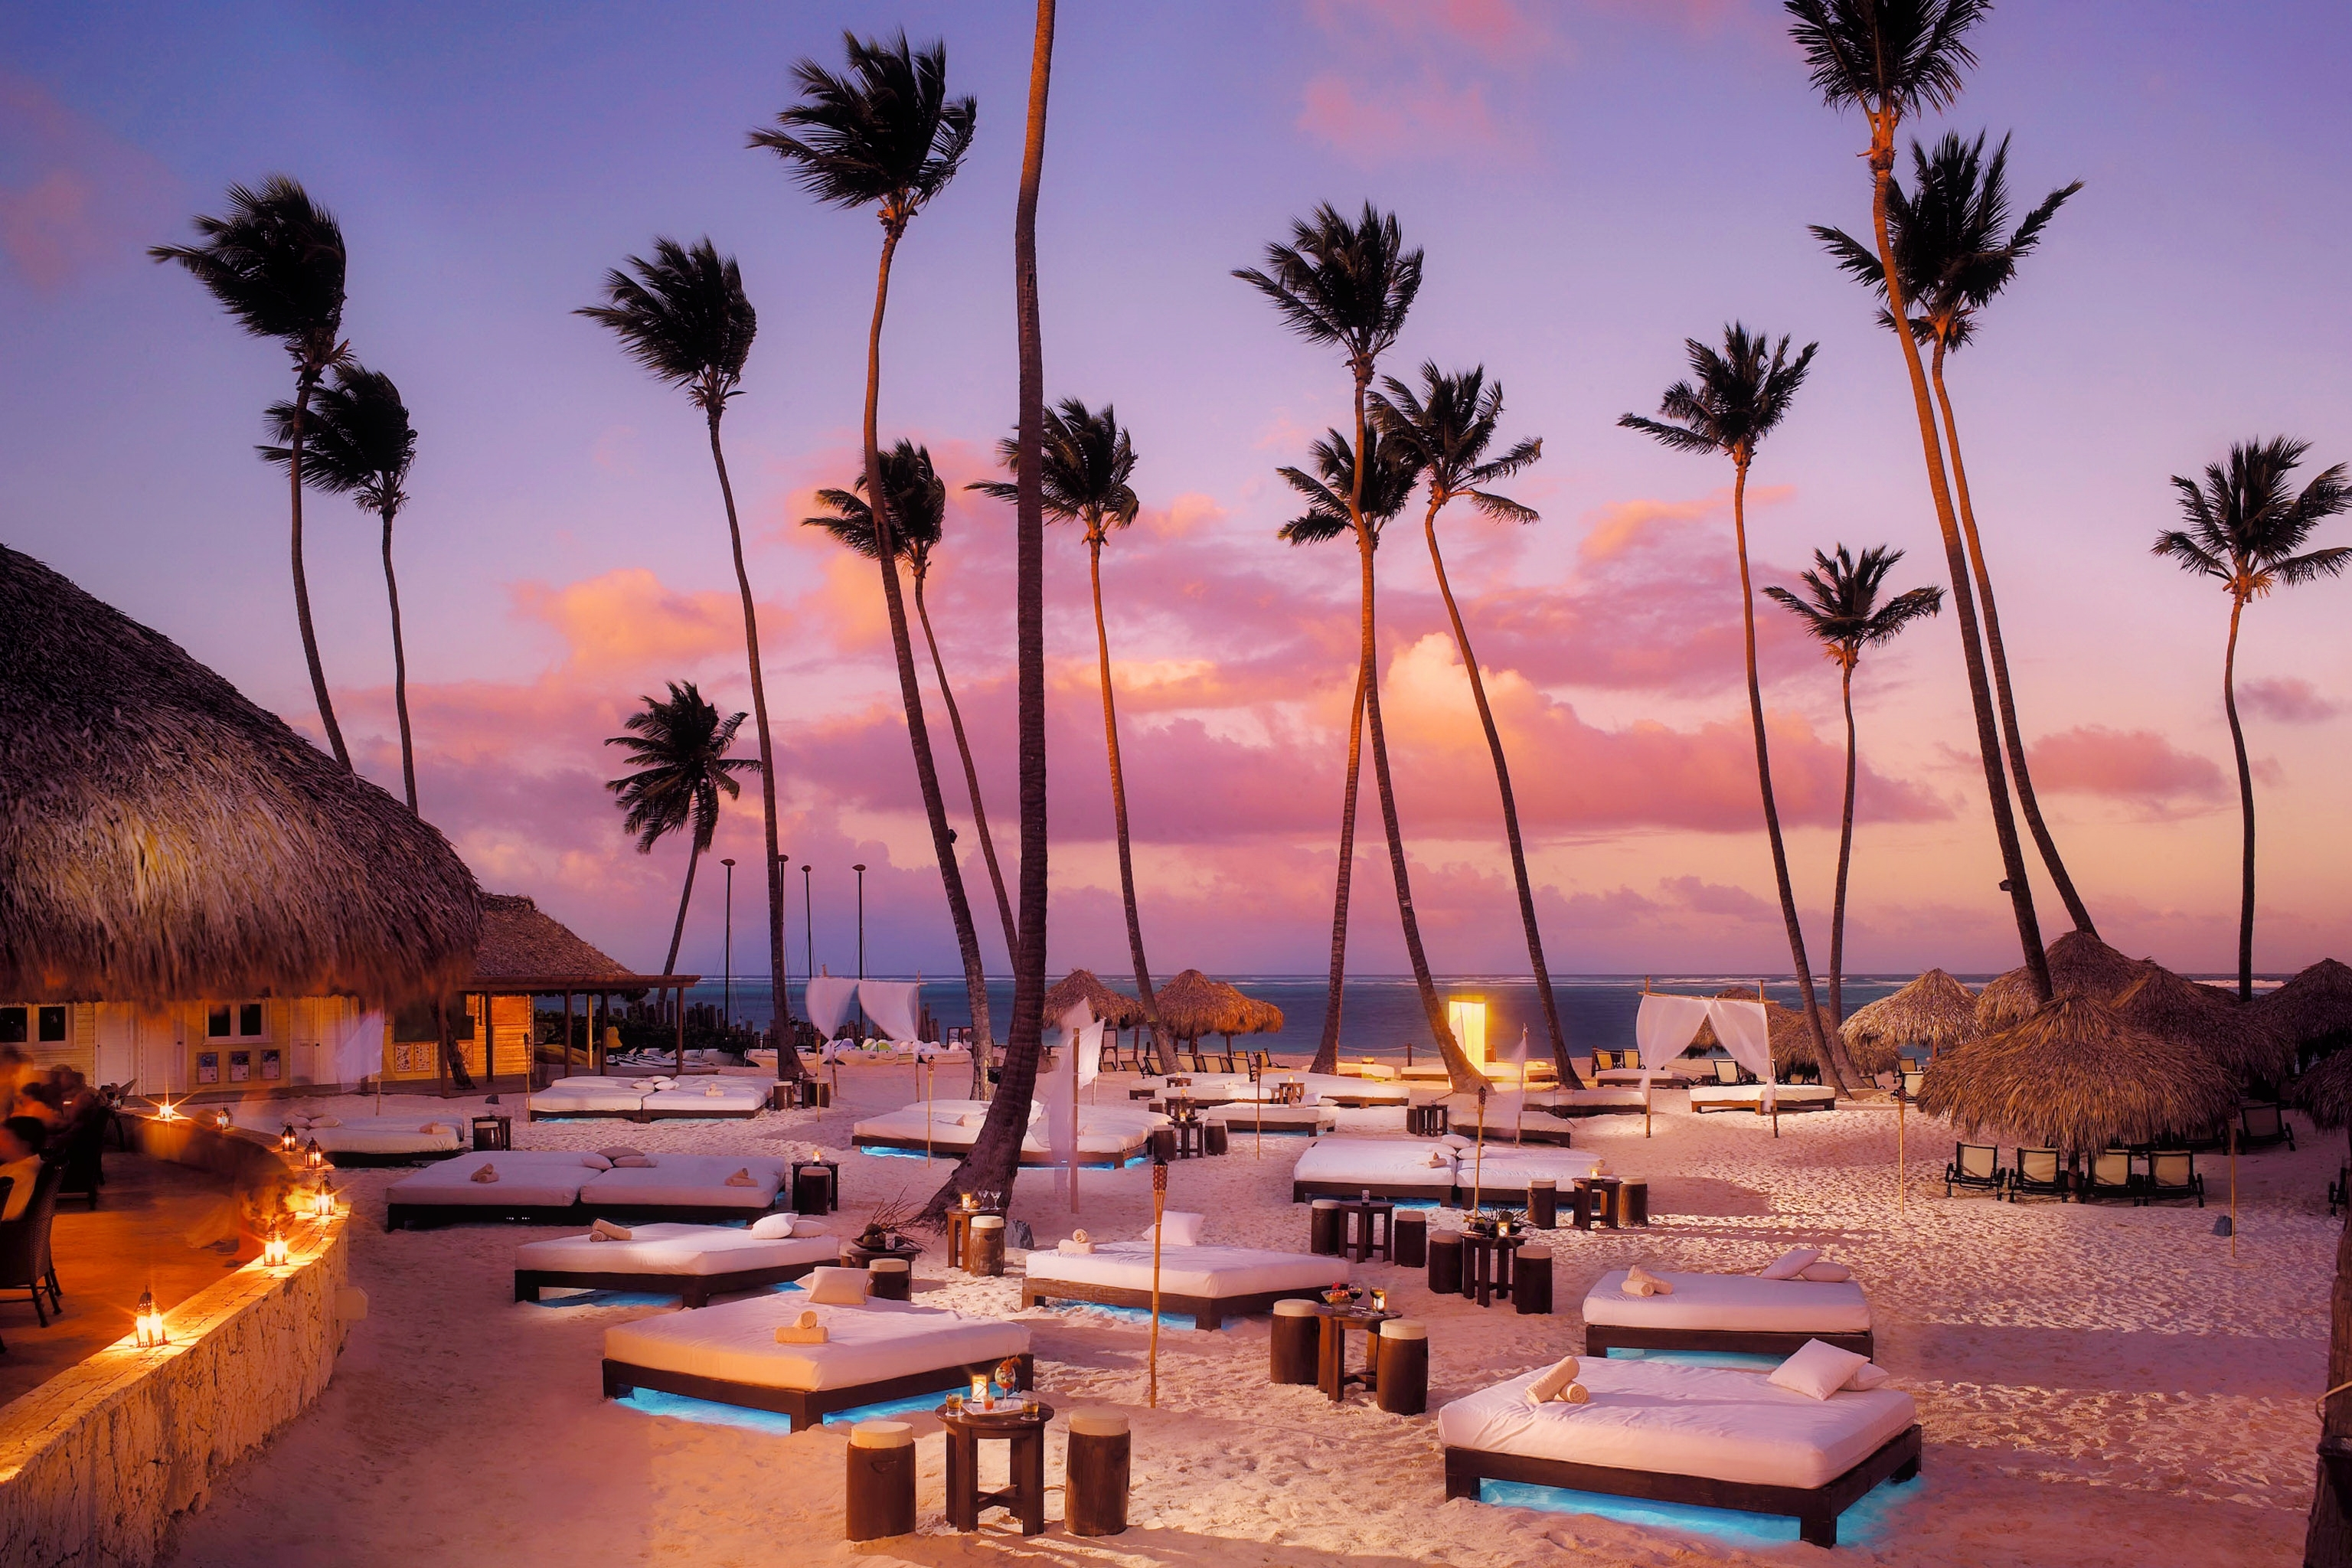 bungalows-sunbeds-palm-trees-lantern-resort-sunset (1)